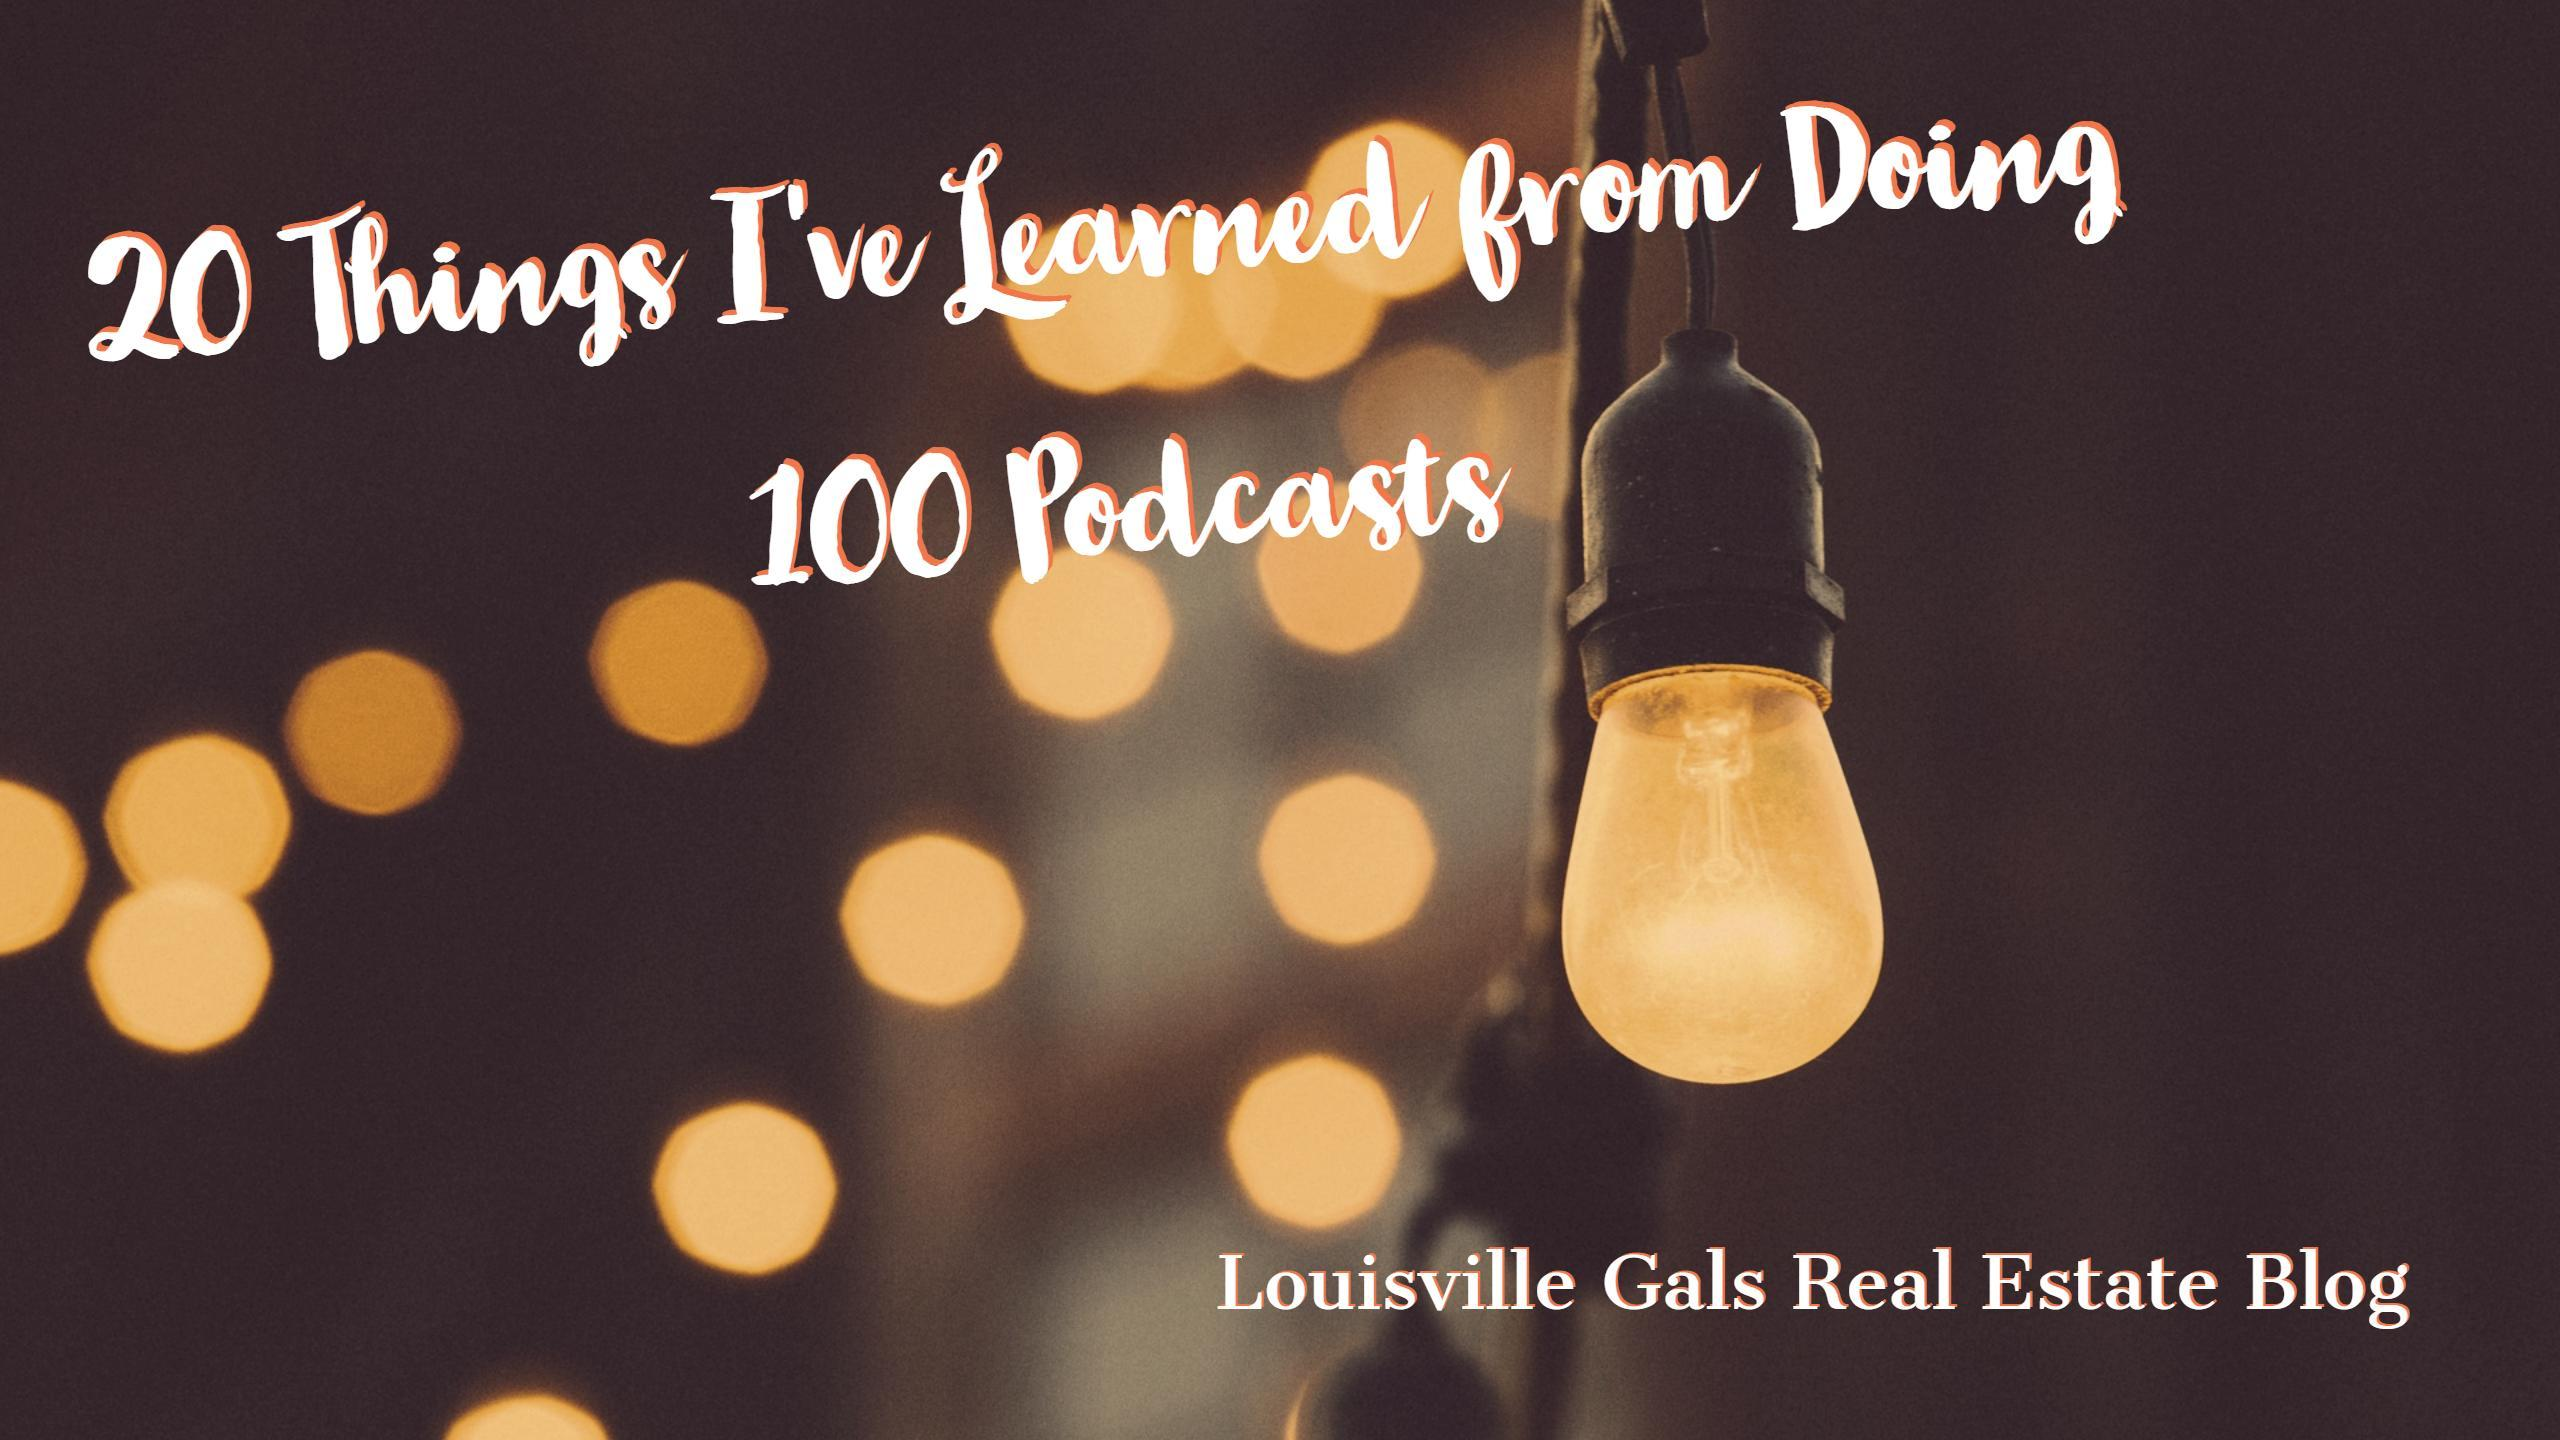 20 Things I learned From Doing 100 Podcasts